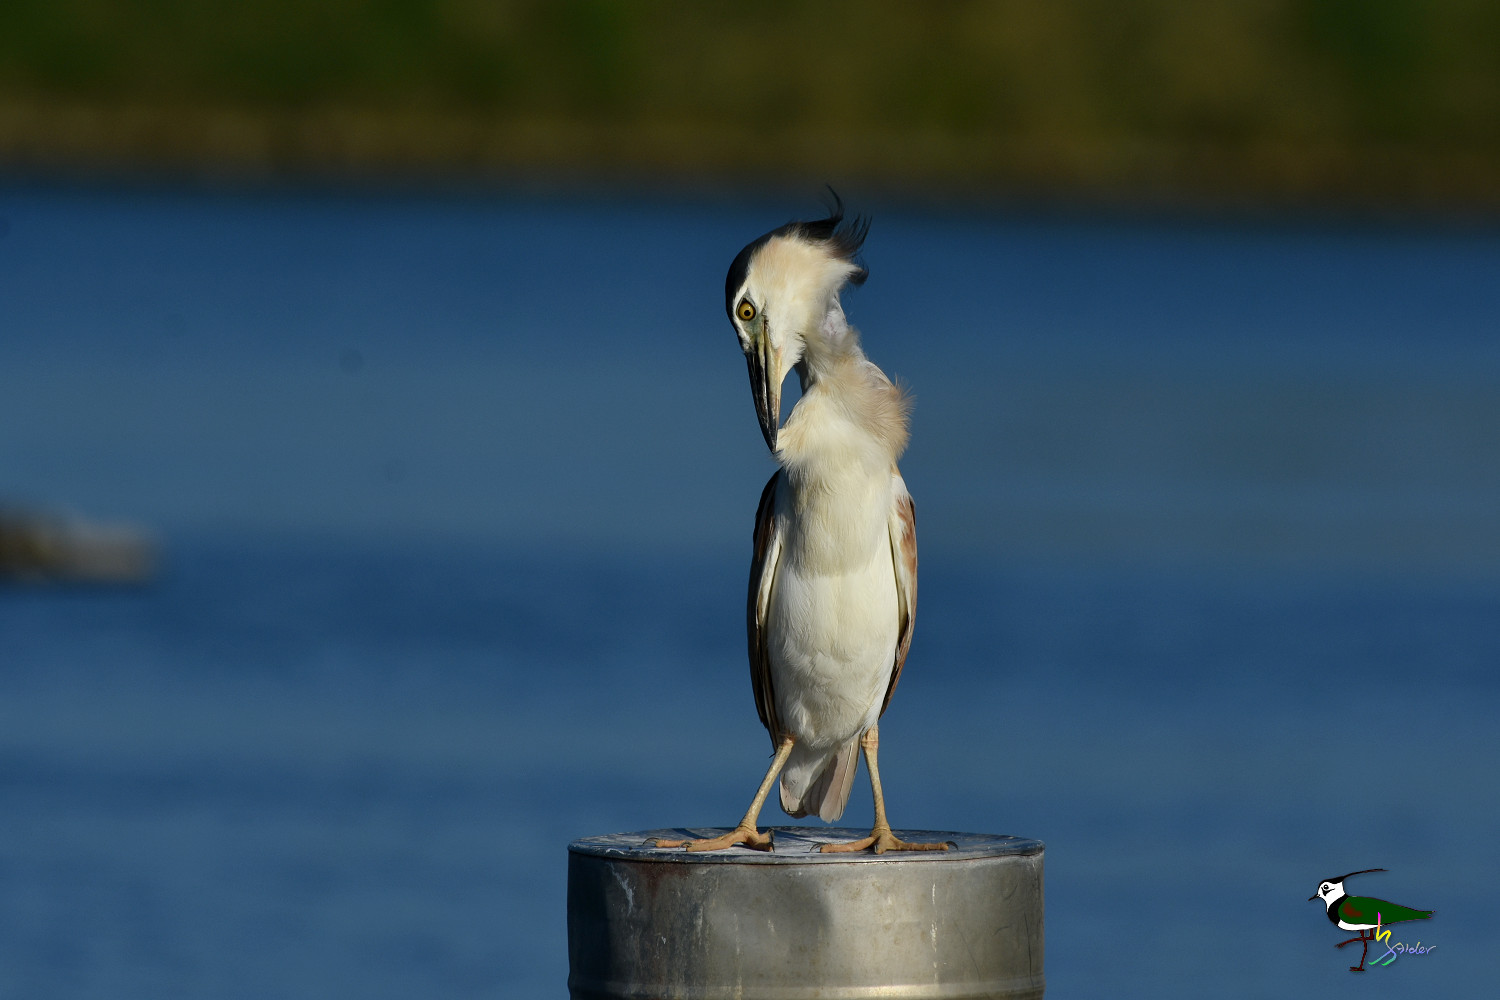 Rufous_Night_Heron_9352